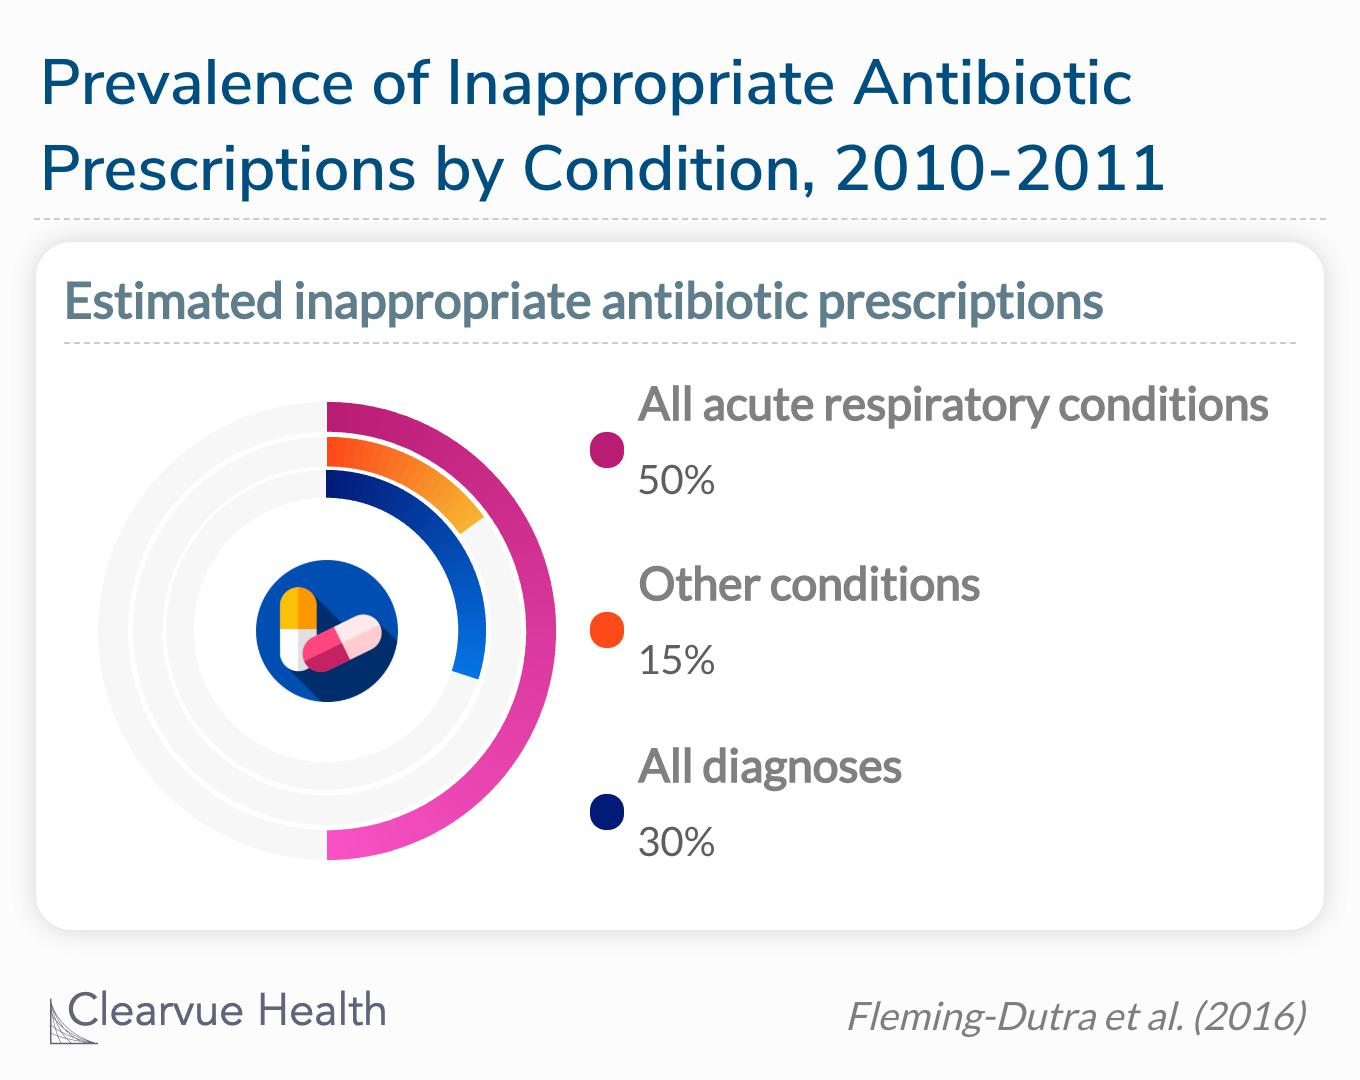 According to this study, an estimated 30% of antibiotics prescribed in the United States are unnecessary.